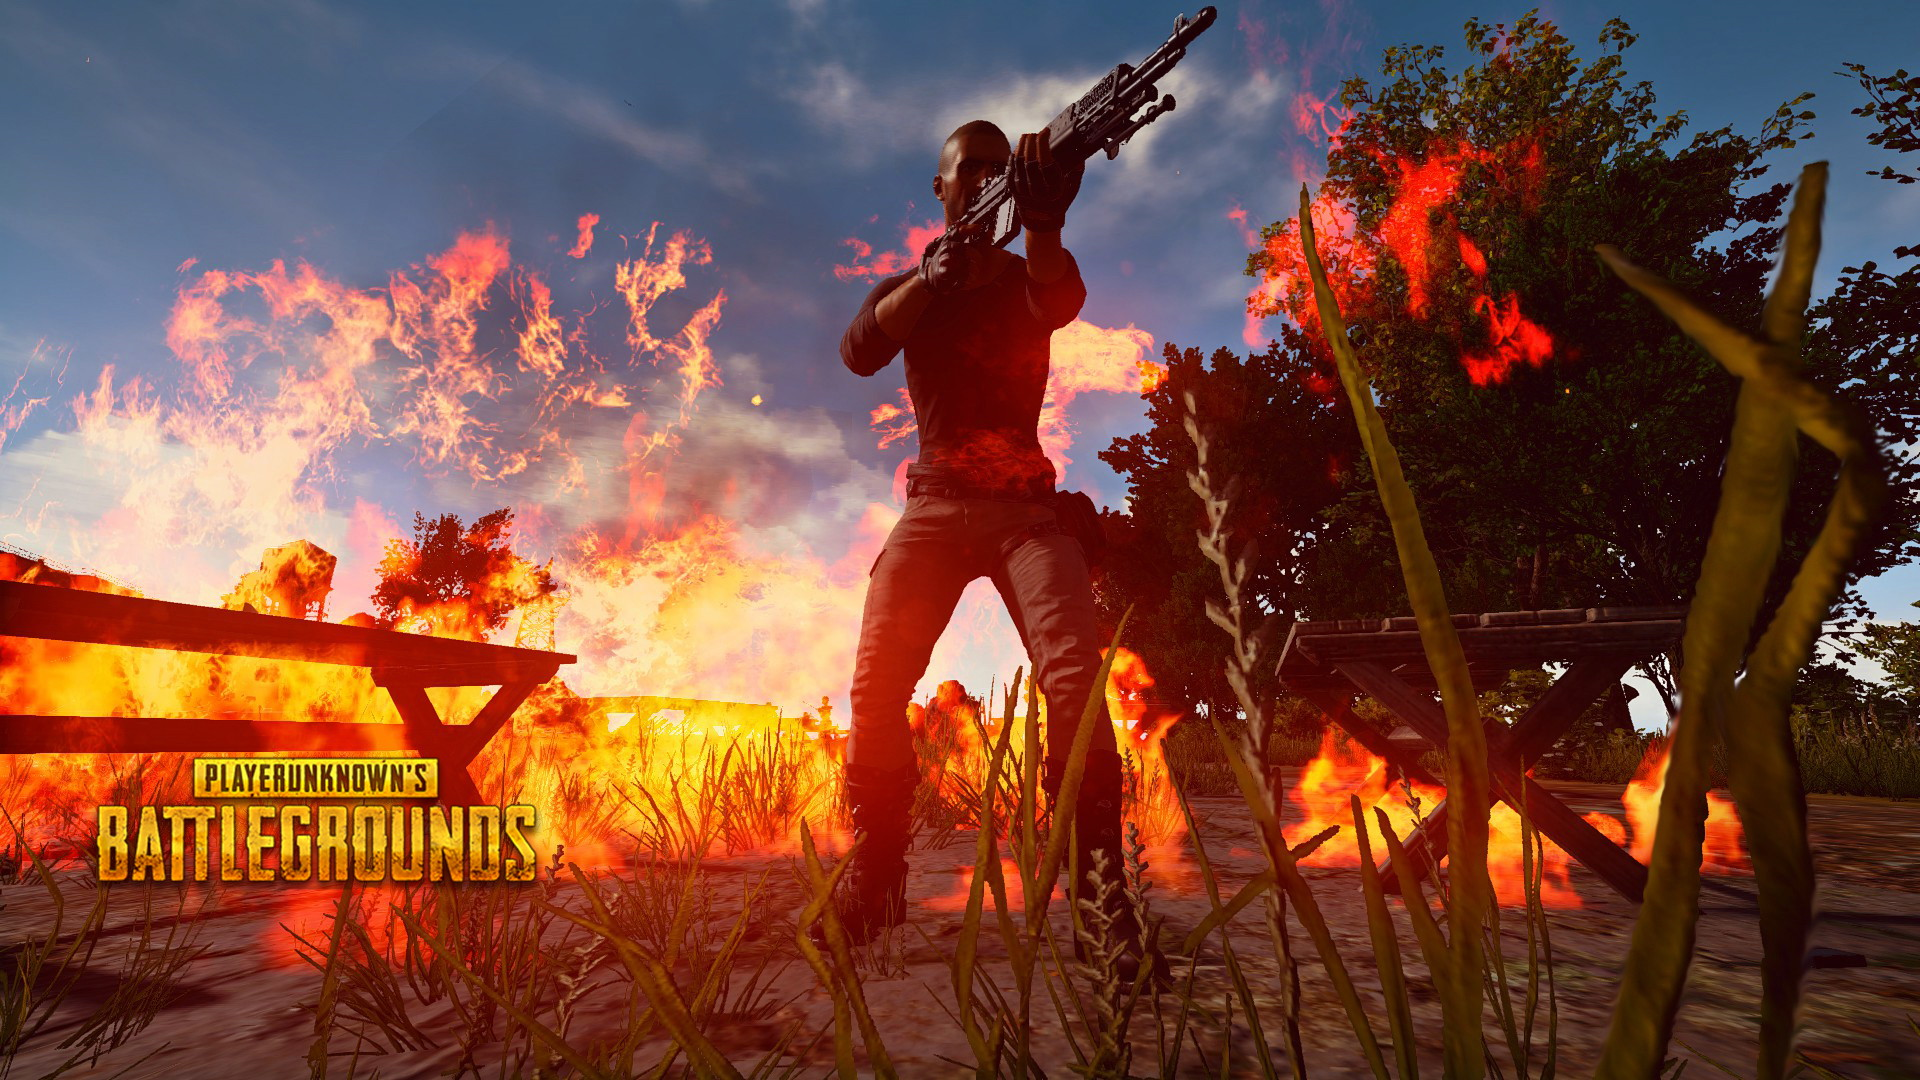 Pubg Hd Wallpapers Free Download For Desktop Pc: Hình Nền PUBG (Battleground) Cho Máy Tính